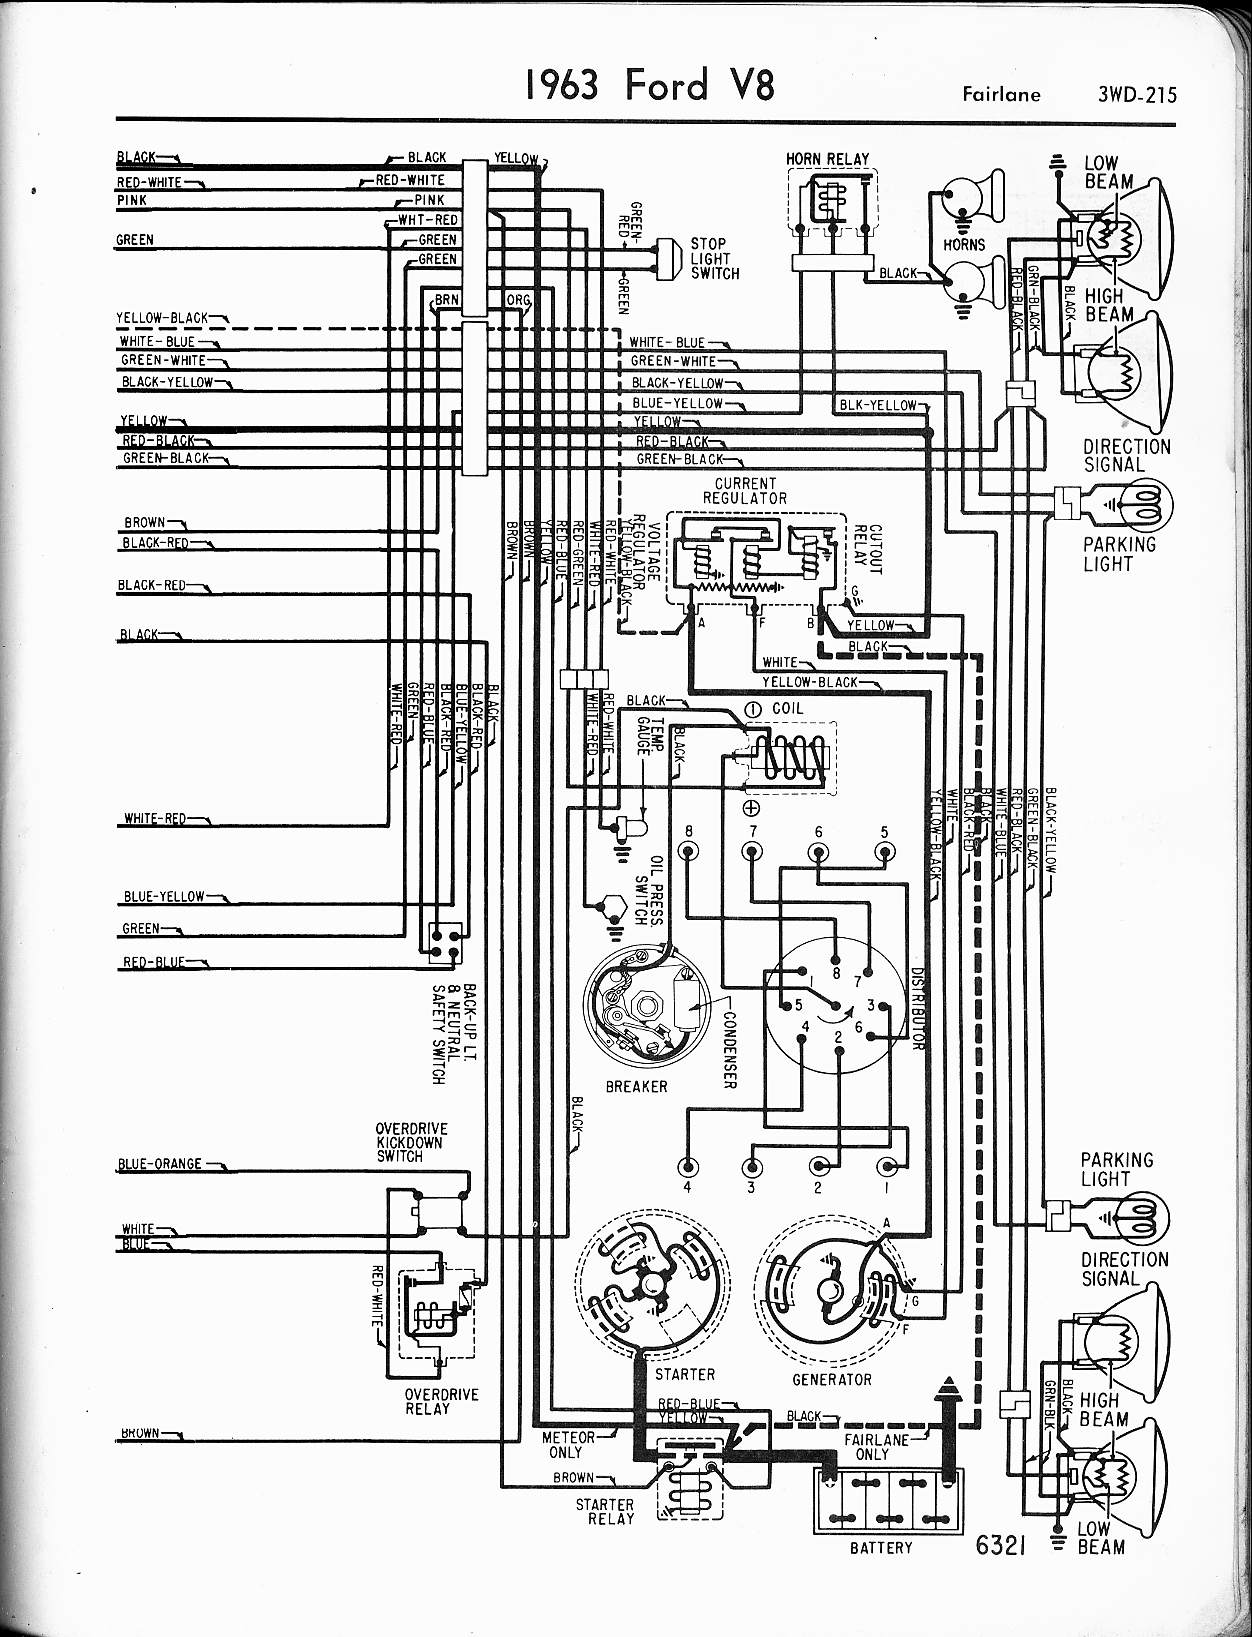 hight resolution of headlight switch wiring 1956 ford data wiring diagram car headlight switch ford wiring diagrams